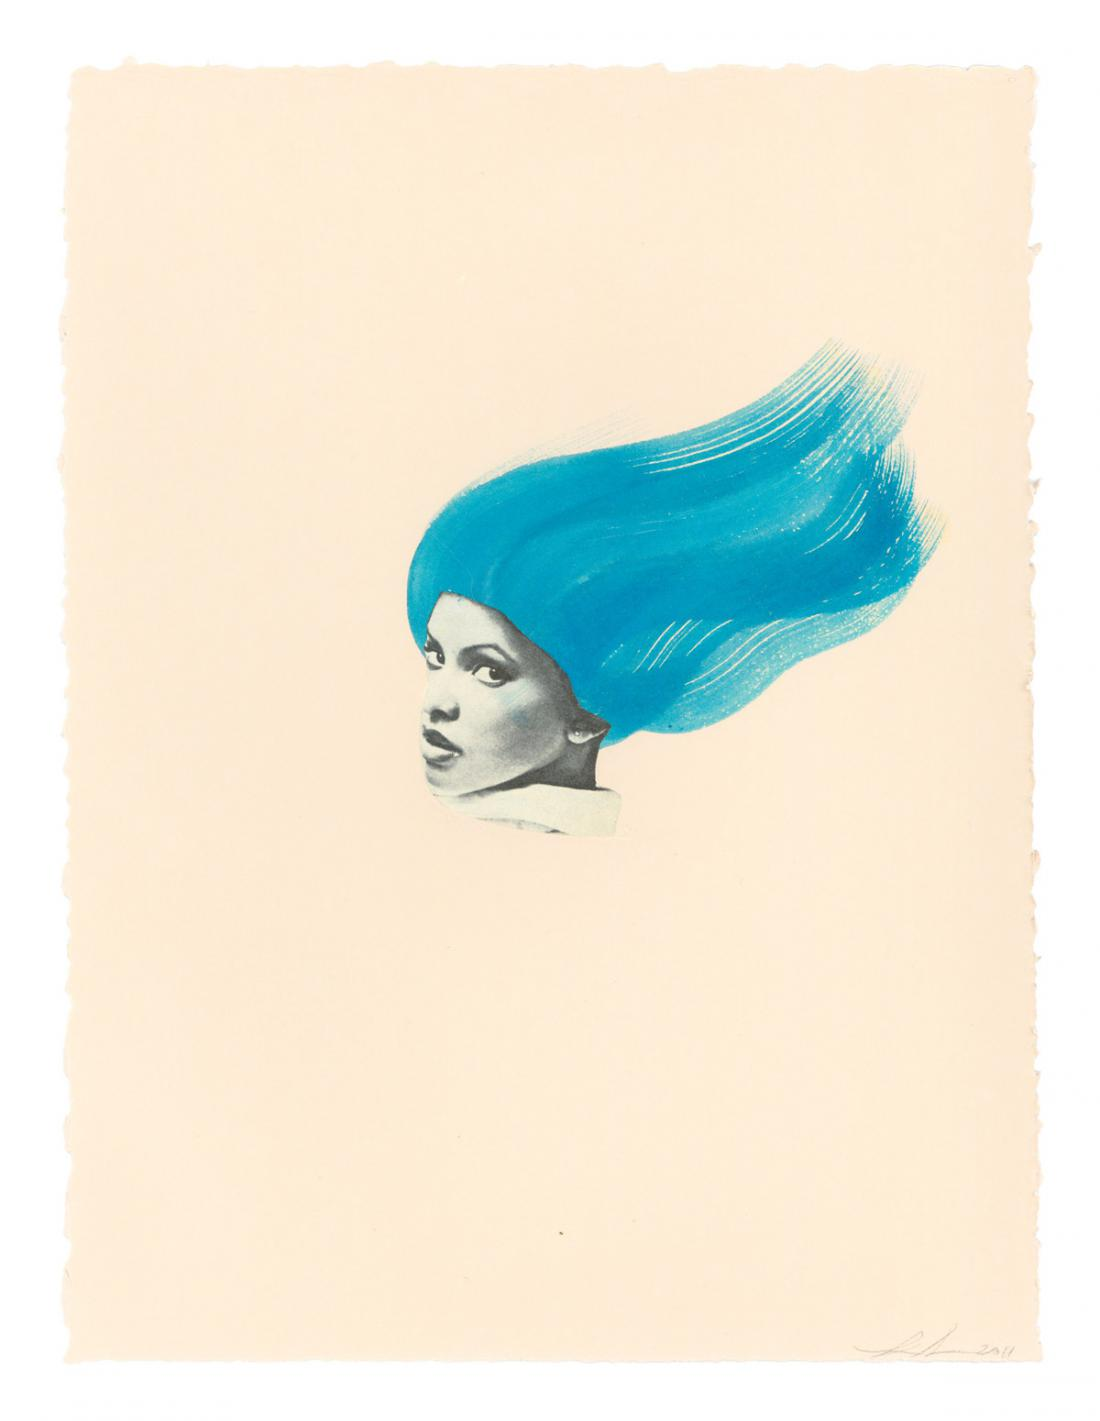 Lorna Simpson, Blue Wave, 2011. The Studio Museum in Harlem; gift of the artist on the occasion of the Romare Bearden (1911–1988) Centennial and the Bearden Project. © Lorna Simpson, courtesy the artist and Hauser & Wirth